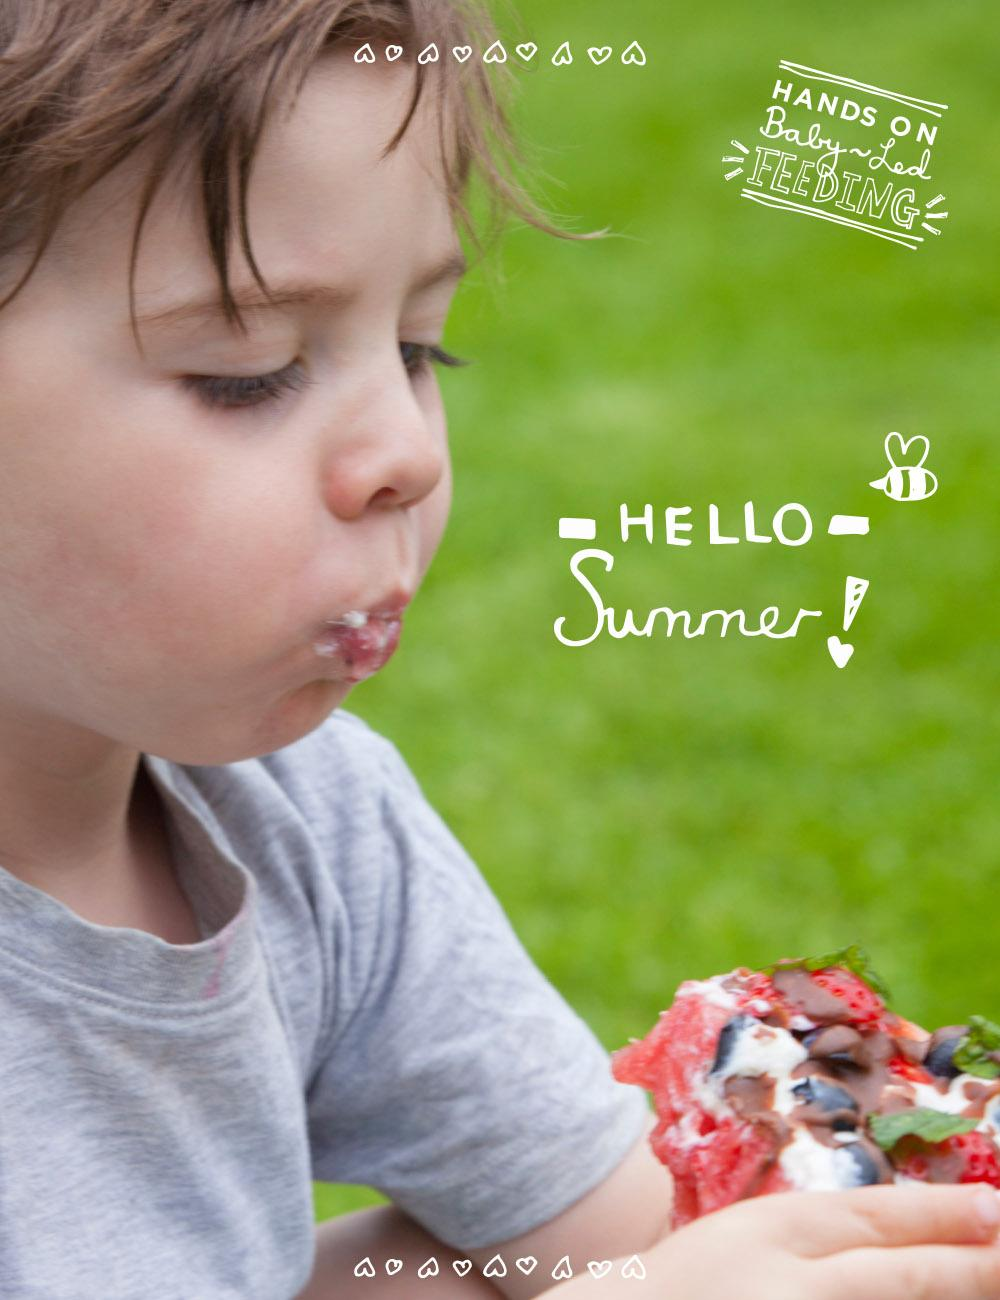 Baby Led Feeding Healthy Watermelon Fruit Pizza. A deliciously healthy, yummy treat for kids on a hot summers day. This baby led weaning recipe is easy to make and so nutritious, refined sugar free treat packed with goodness. Great for baby led feeding or as a recipe for baby led weaning.